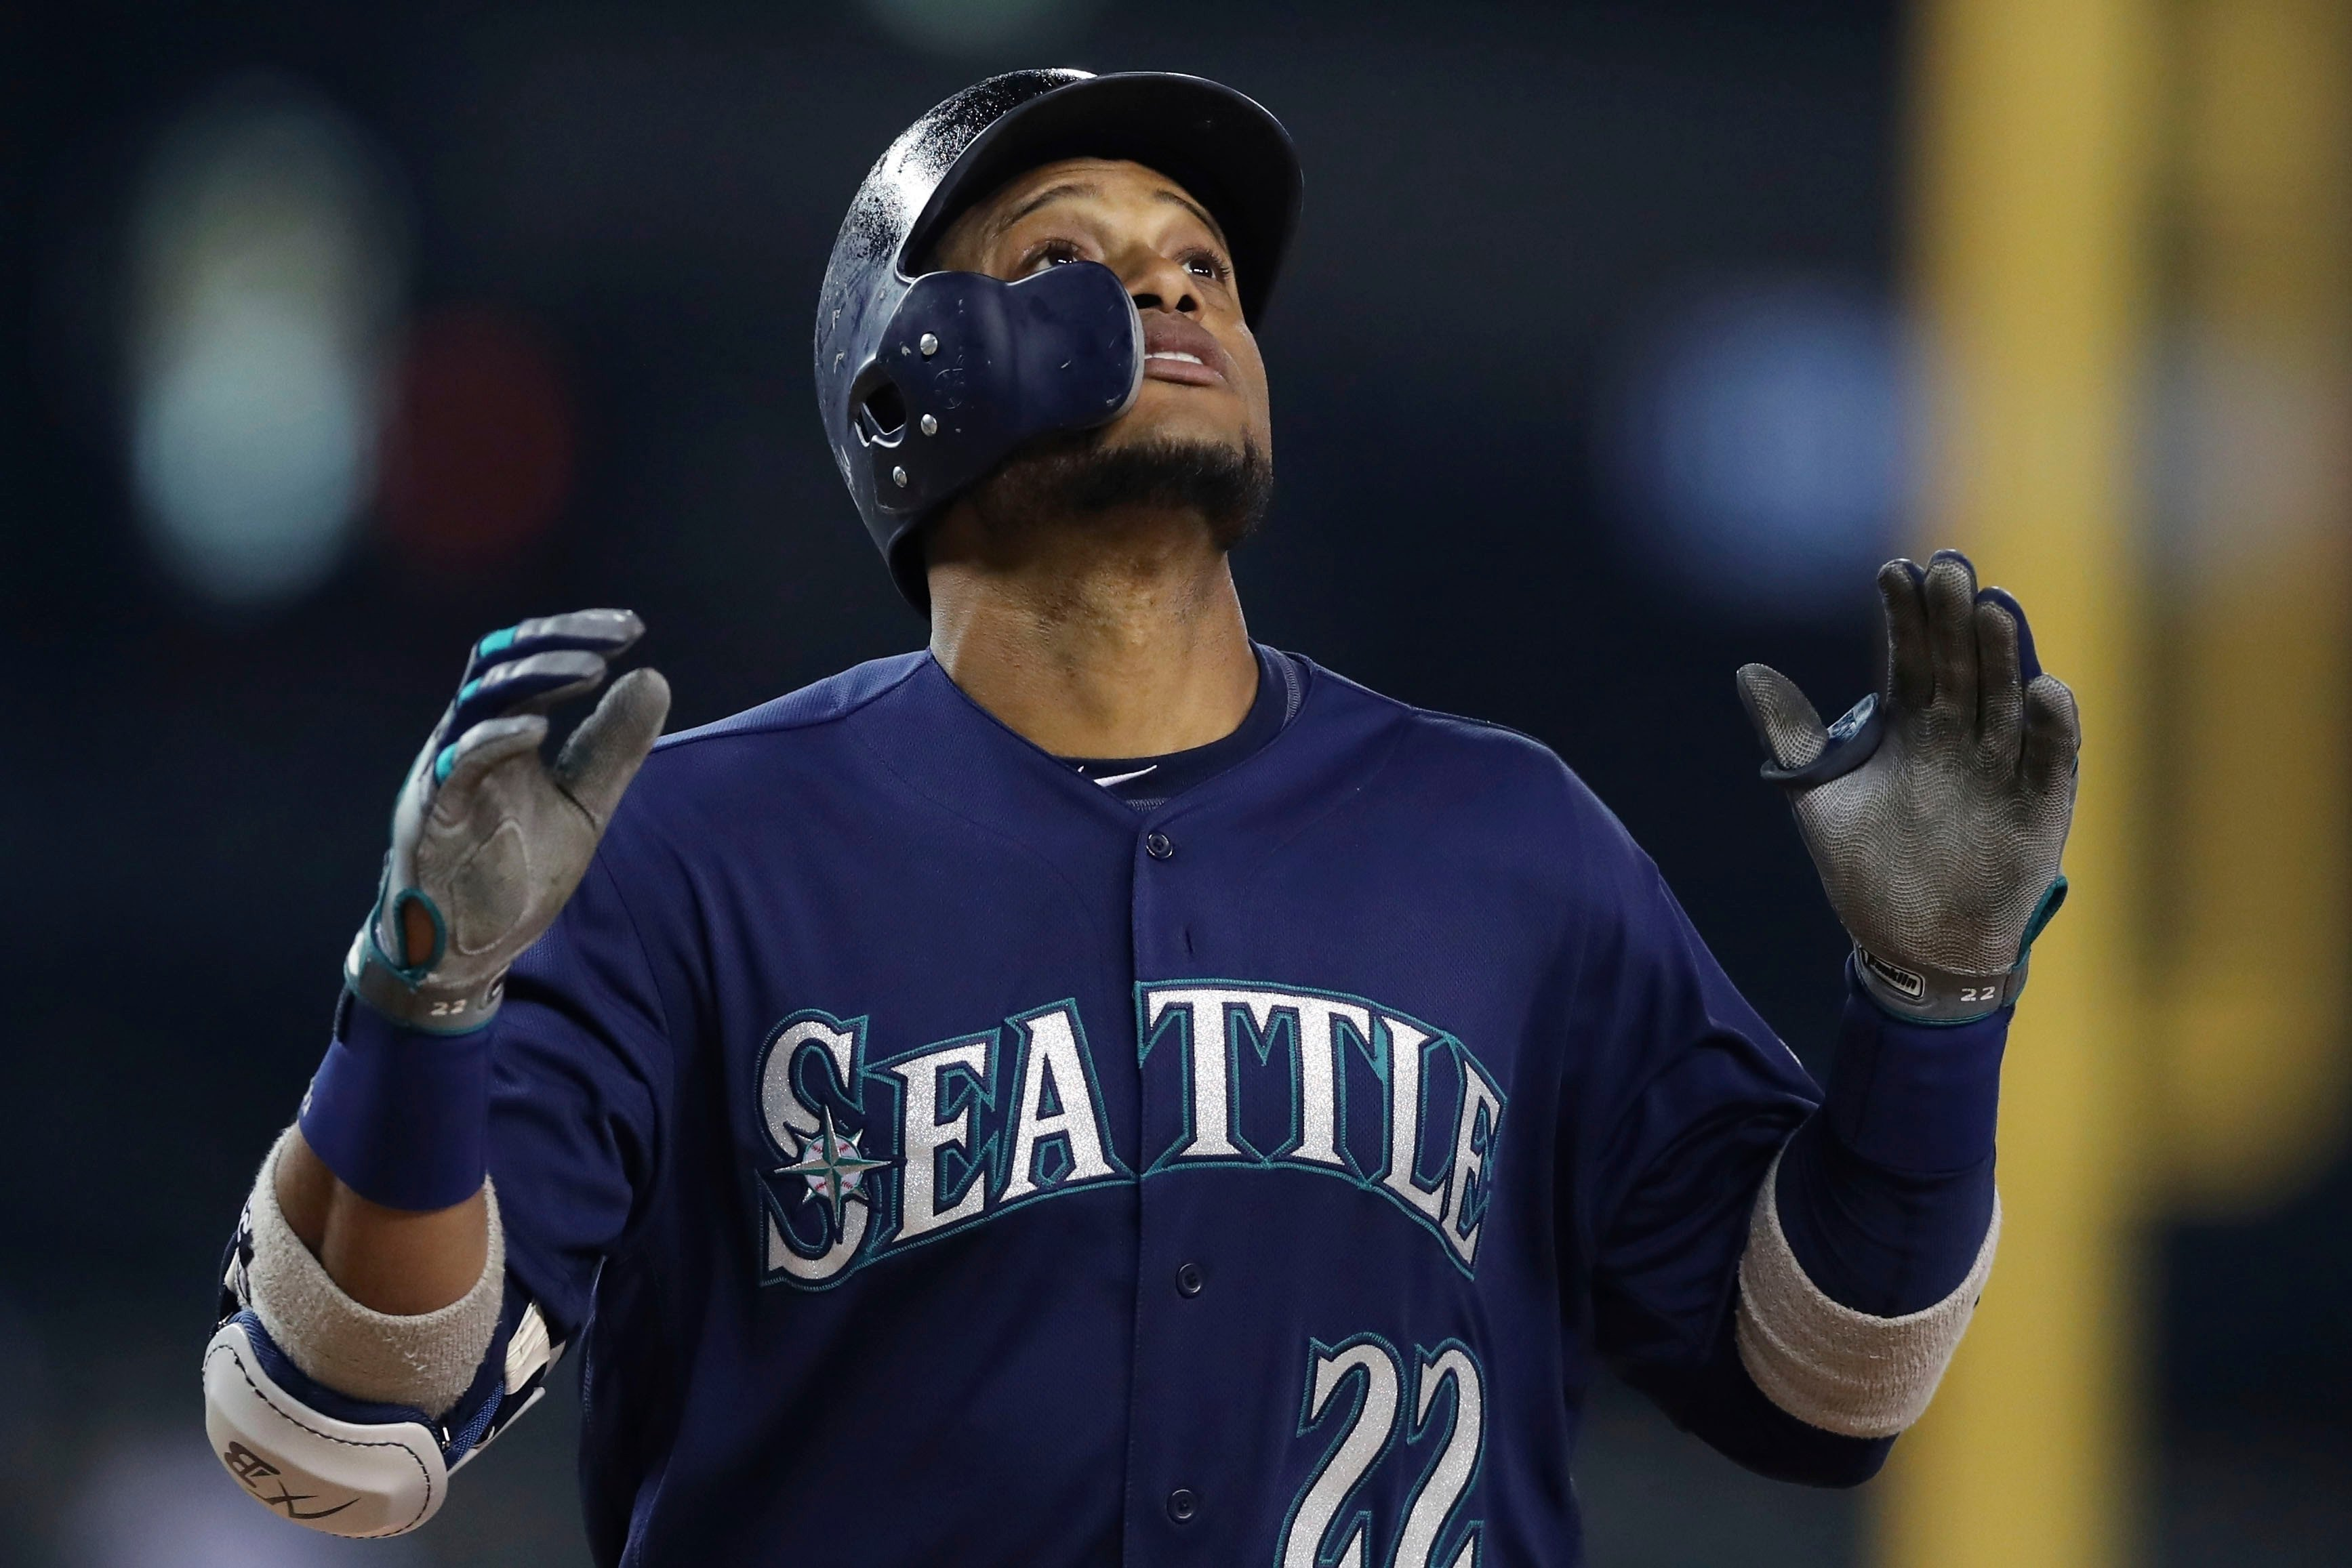 Scouts: Cano brings impact bat to Mets along with significant issues